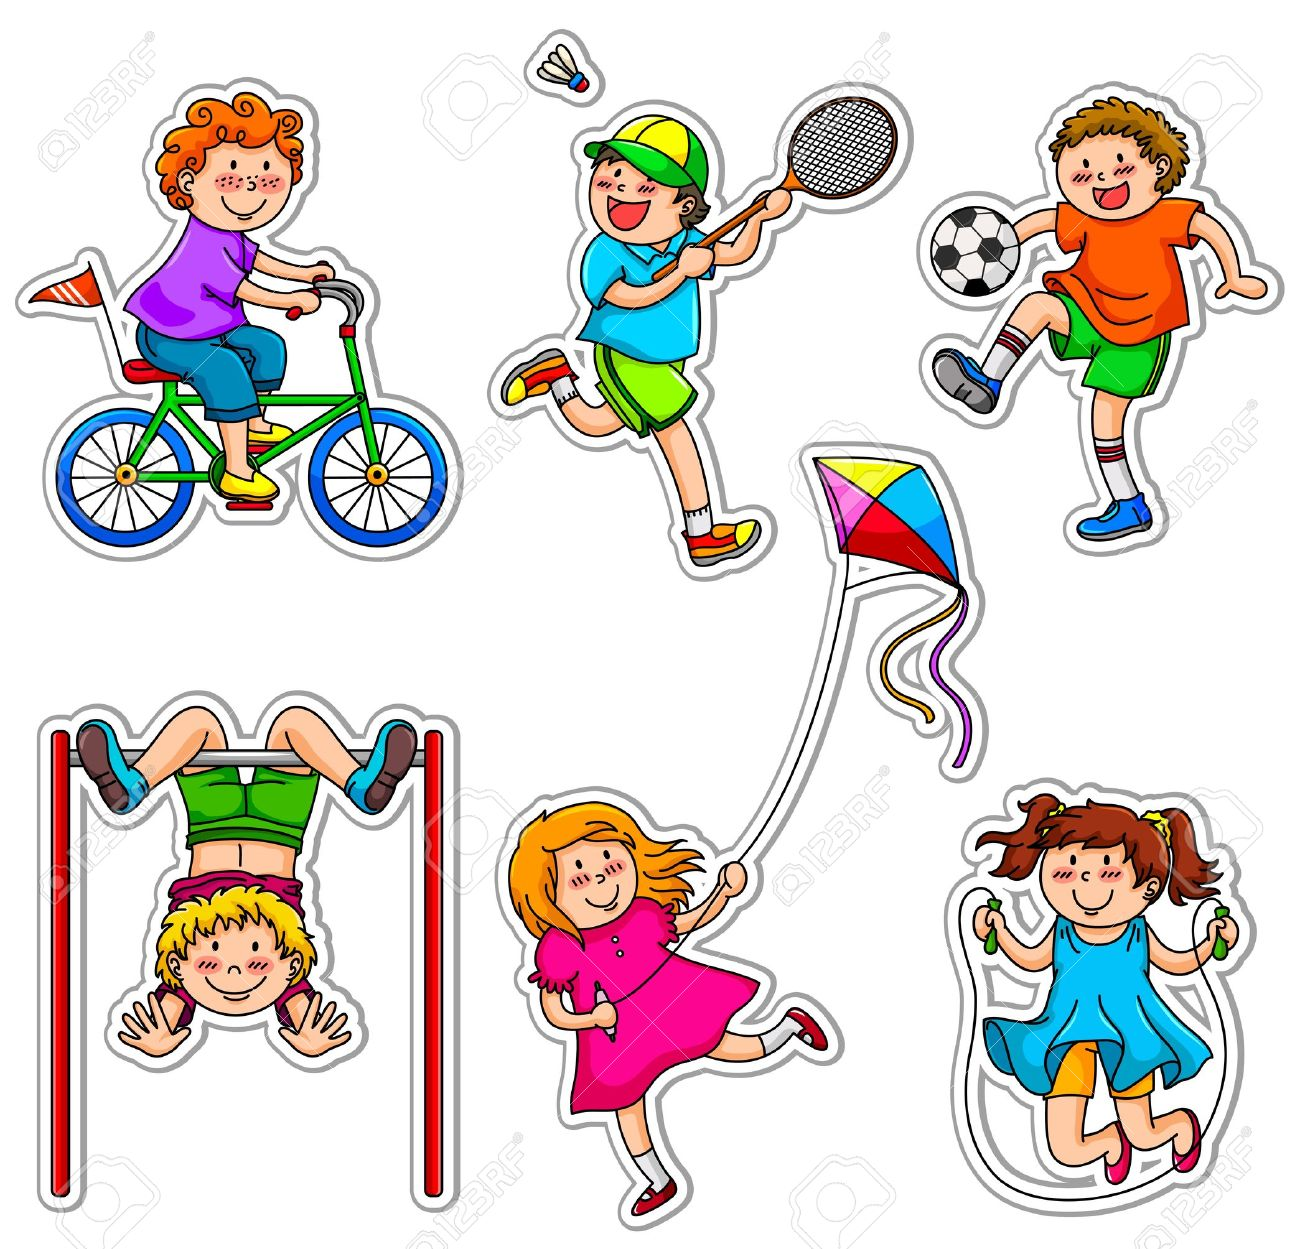 Cartoon sports images free. Athletic clipart sport activity